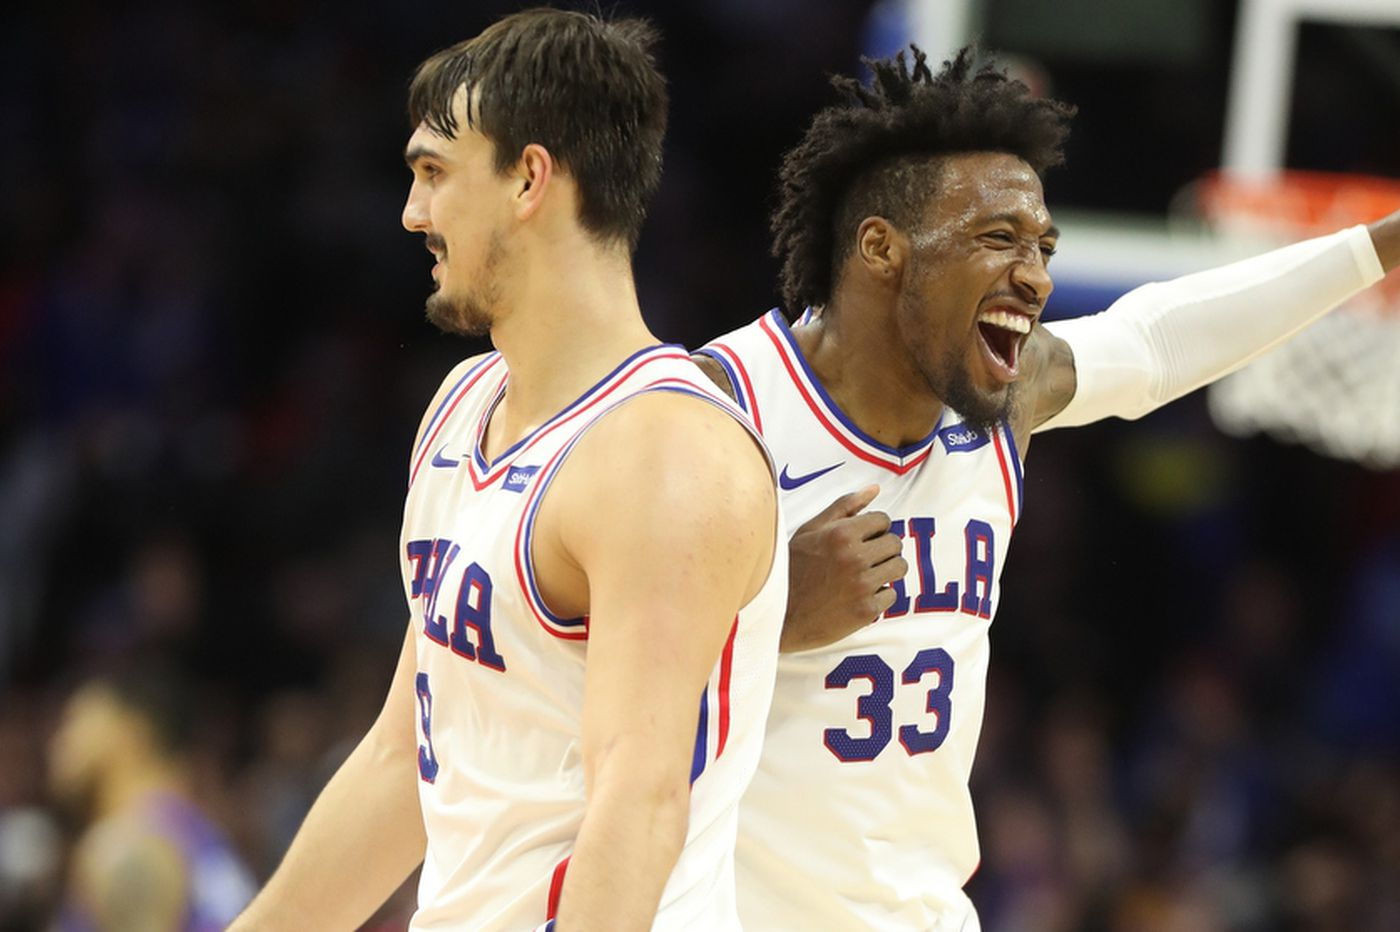 Video: Sixers pay tribute to Dario Saric, Robert Covington in their first game back in Philly